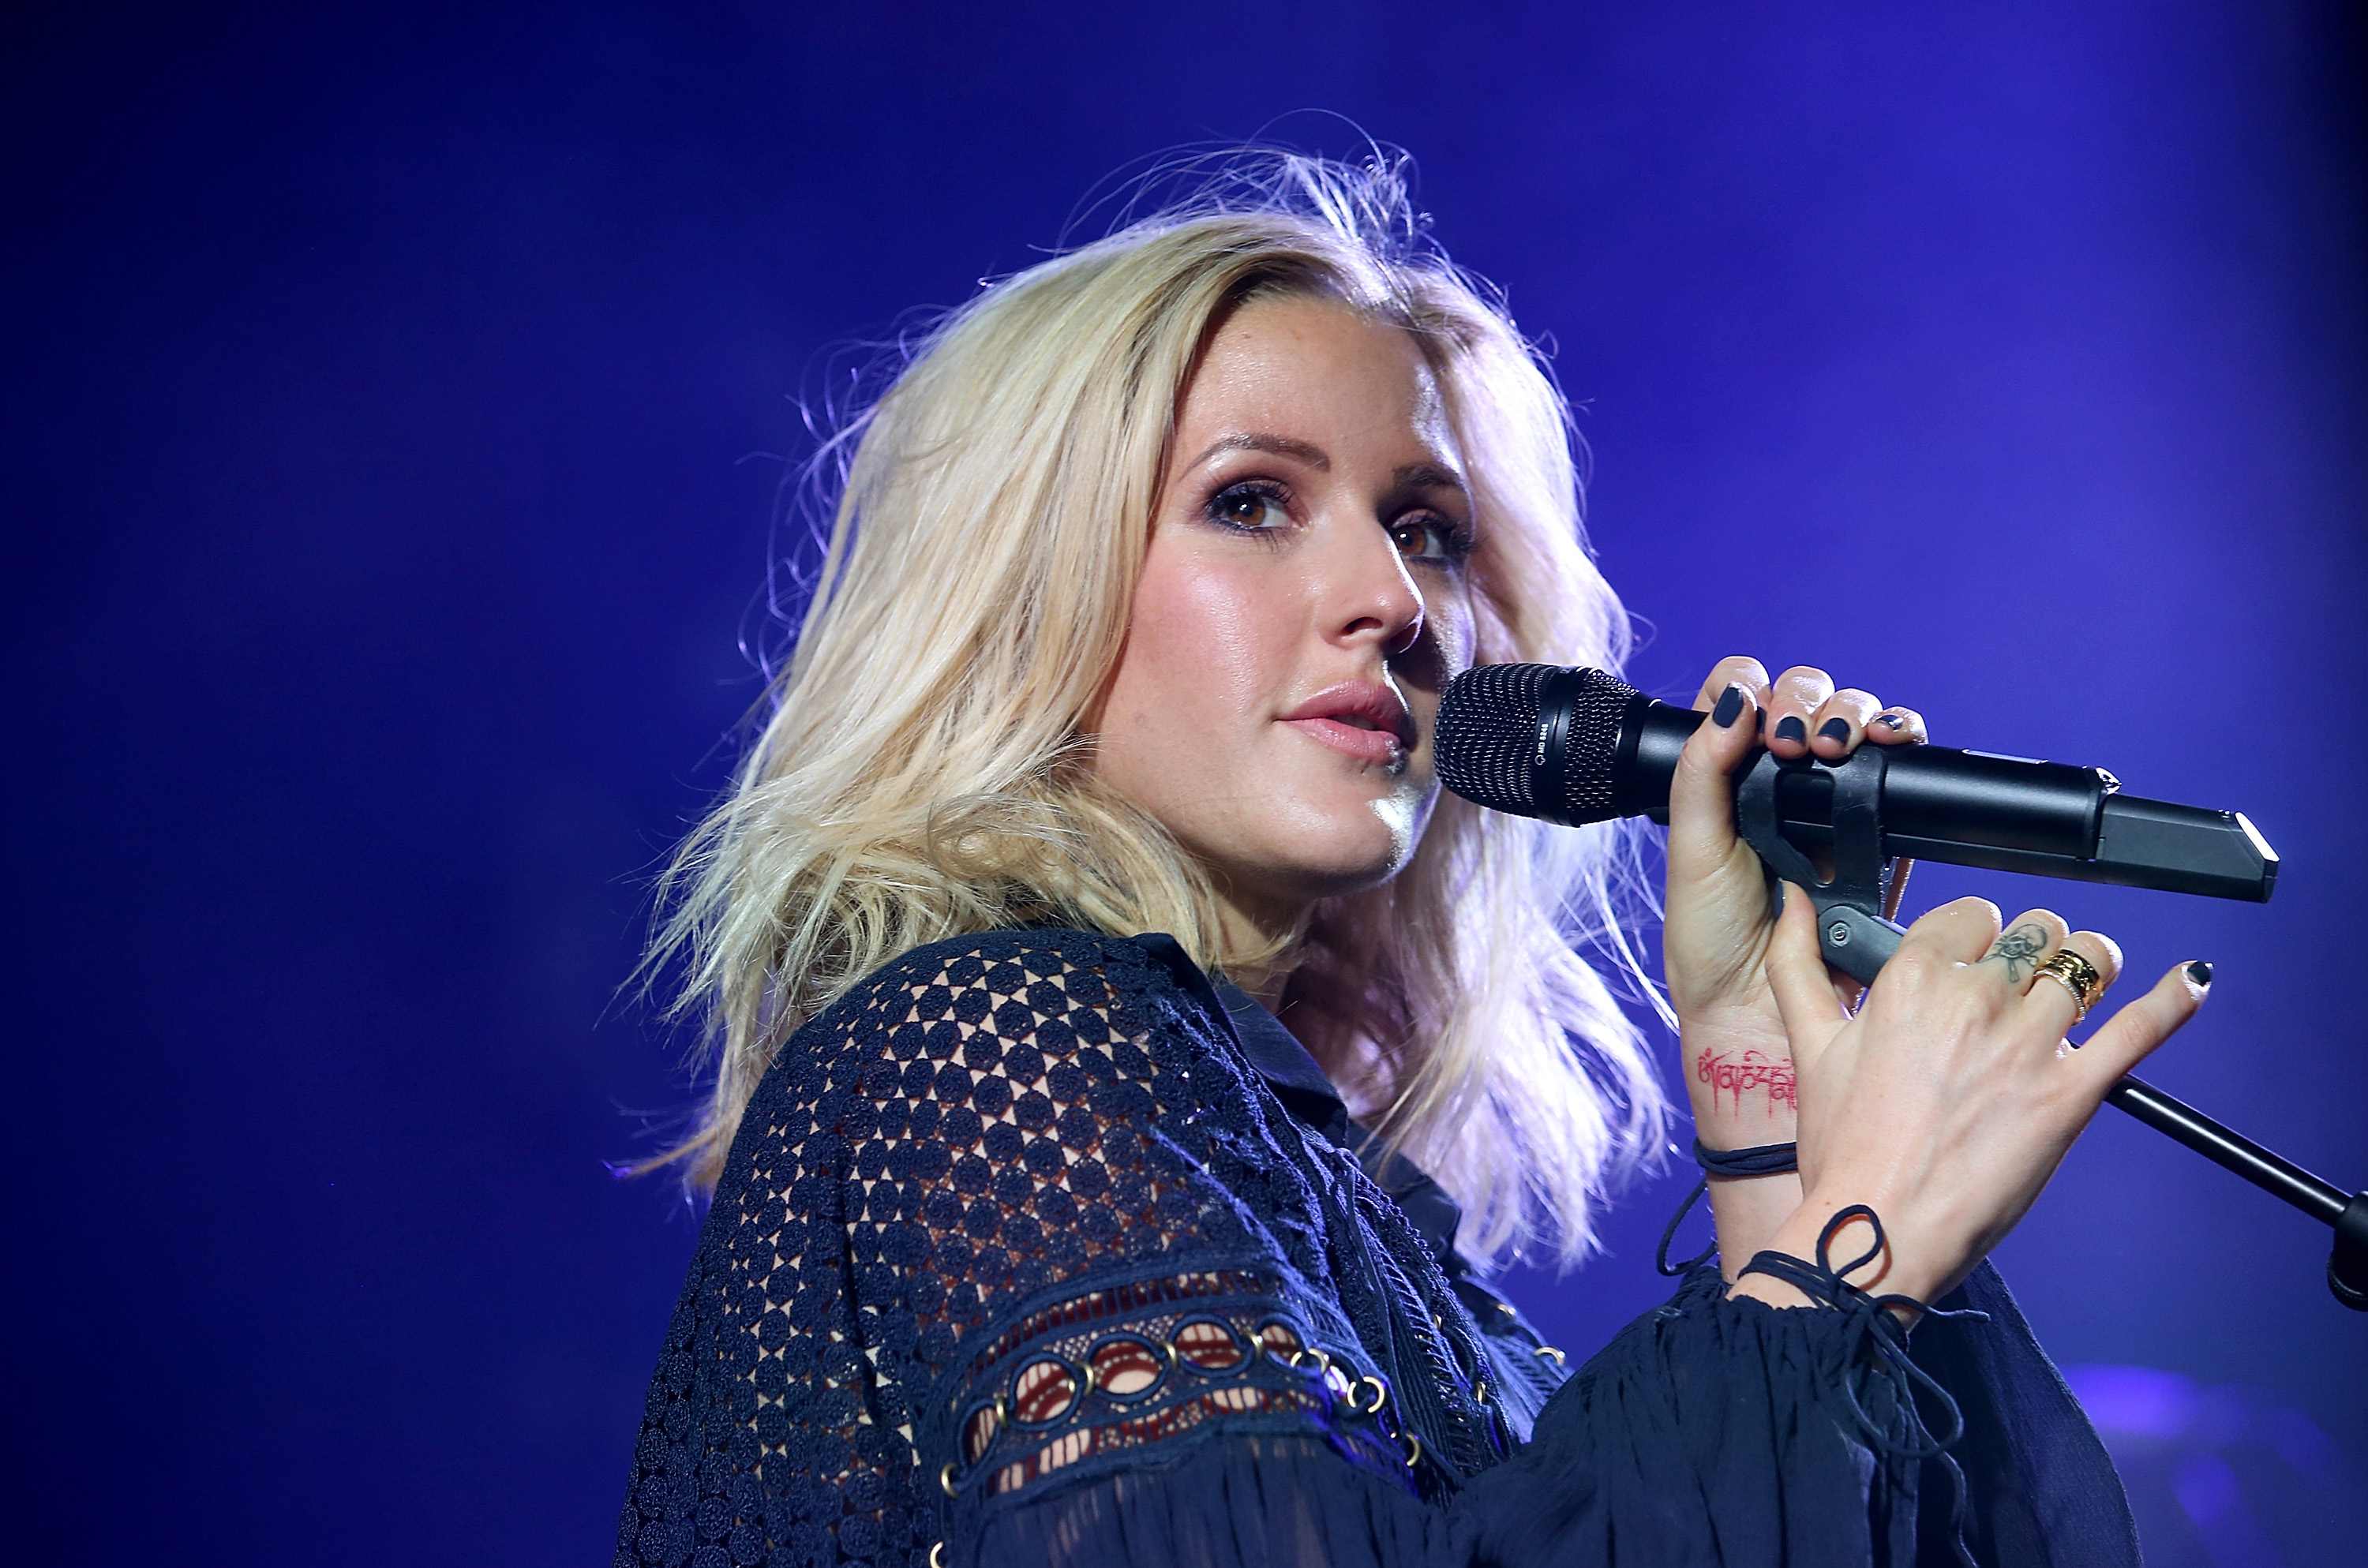 Ellie Goulding has released a new song for Bridget Jones's Baby soundtrack